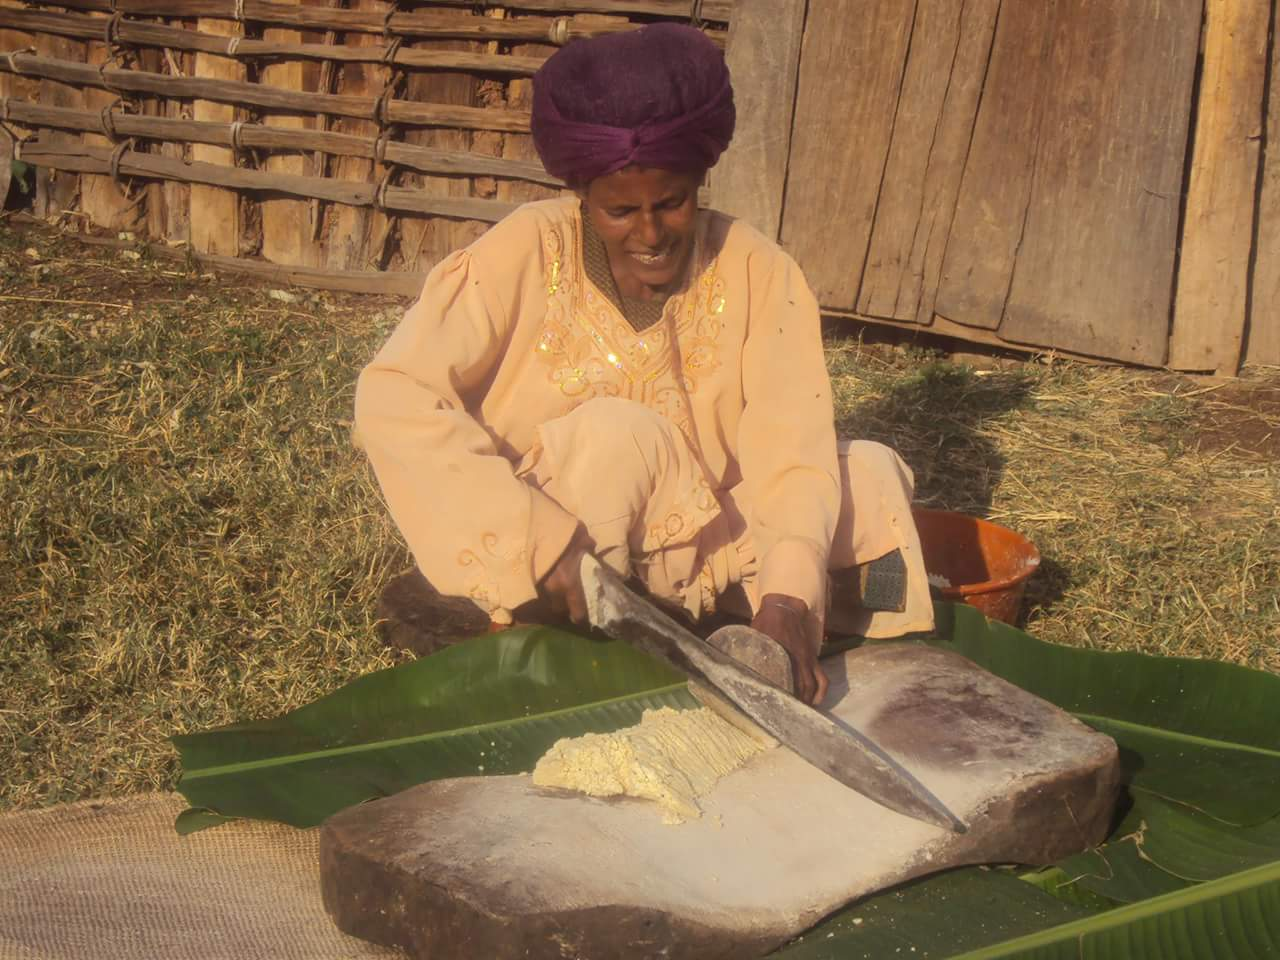 A woman processes the remainder of the enset plant.